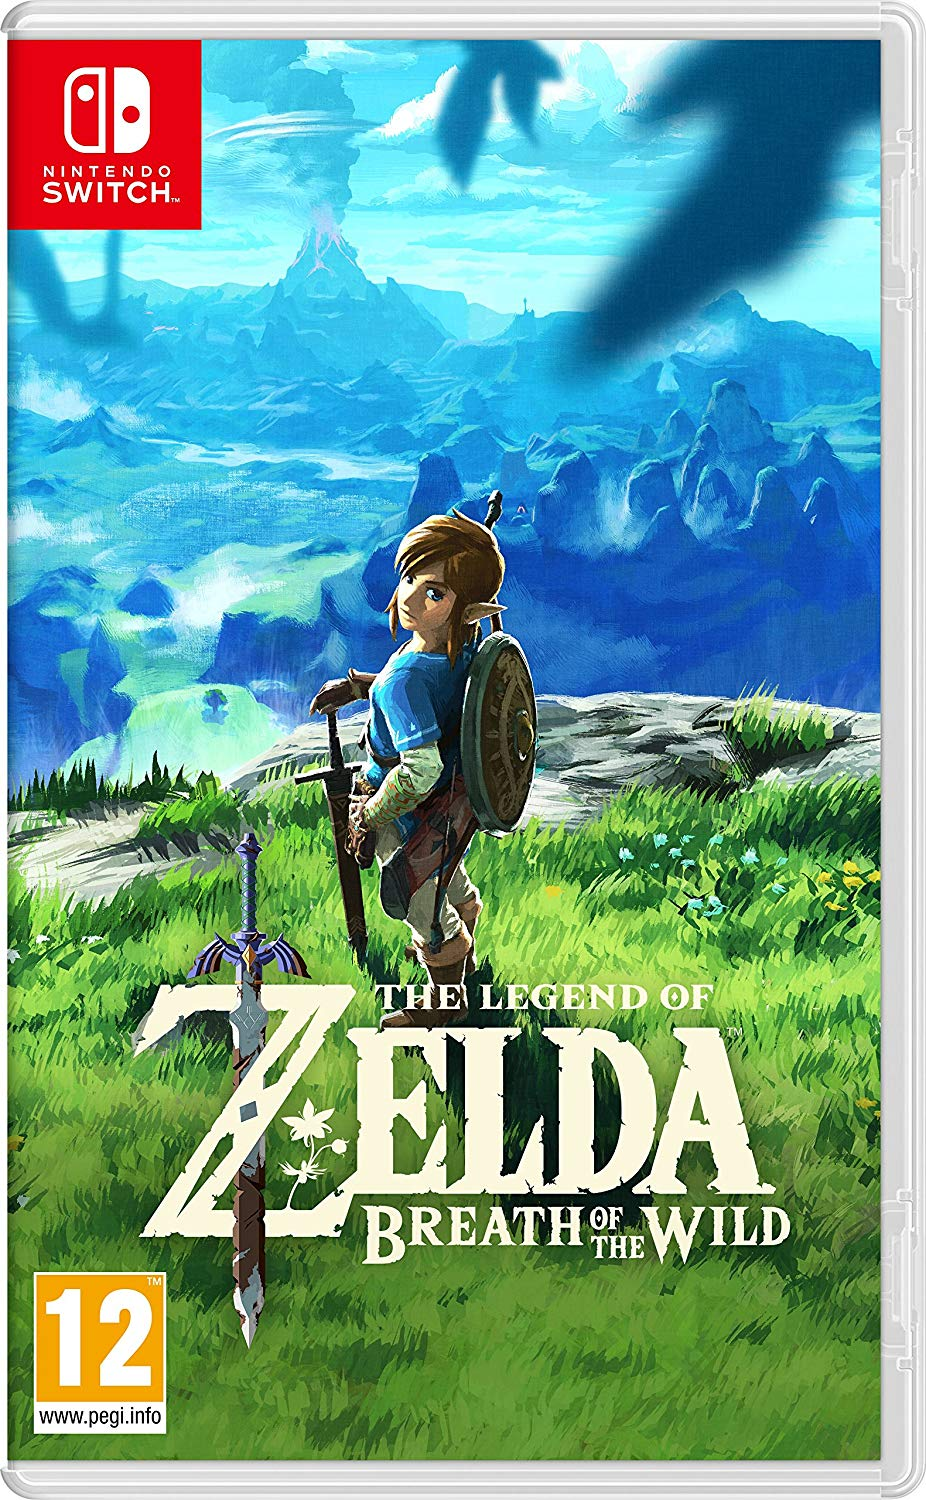 The Legend of Zelda: Breath of the Wild- switch